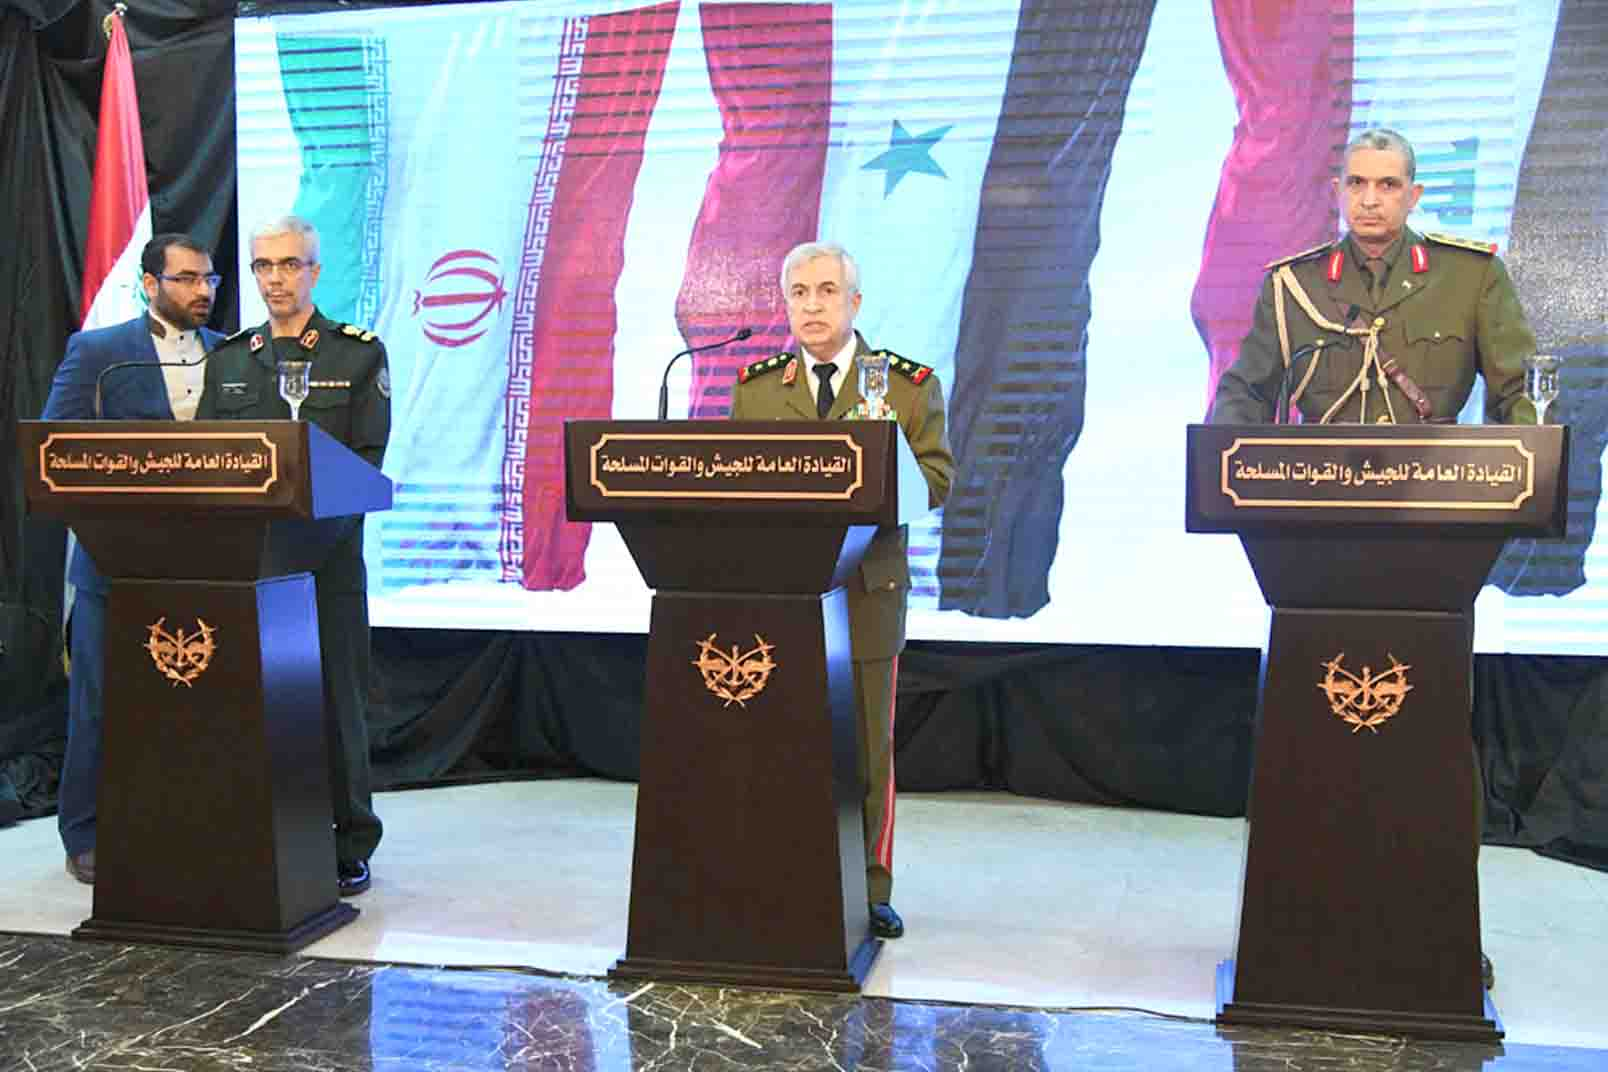 Syrian Defence Minister Ali Abdullah Ayyoub (C), Iraq's Chief of Staff Othman al-Ghanimi (R) and Iranian Chief of Staff Mohammad Hossein Bagheri (2nd L) at a news conference in Damascus, March 18. (dpa)